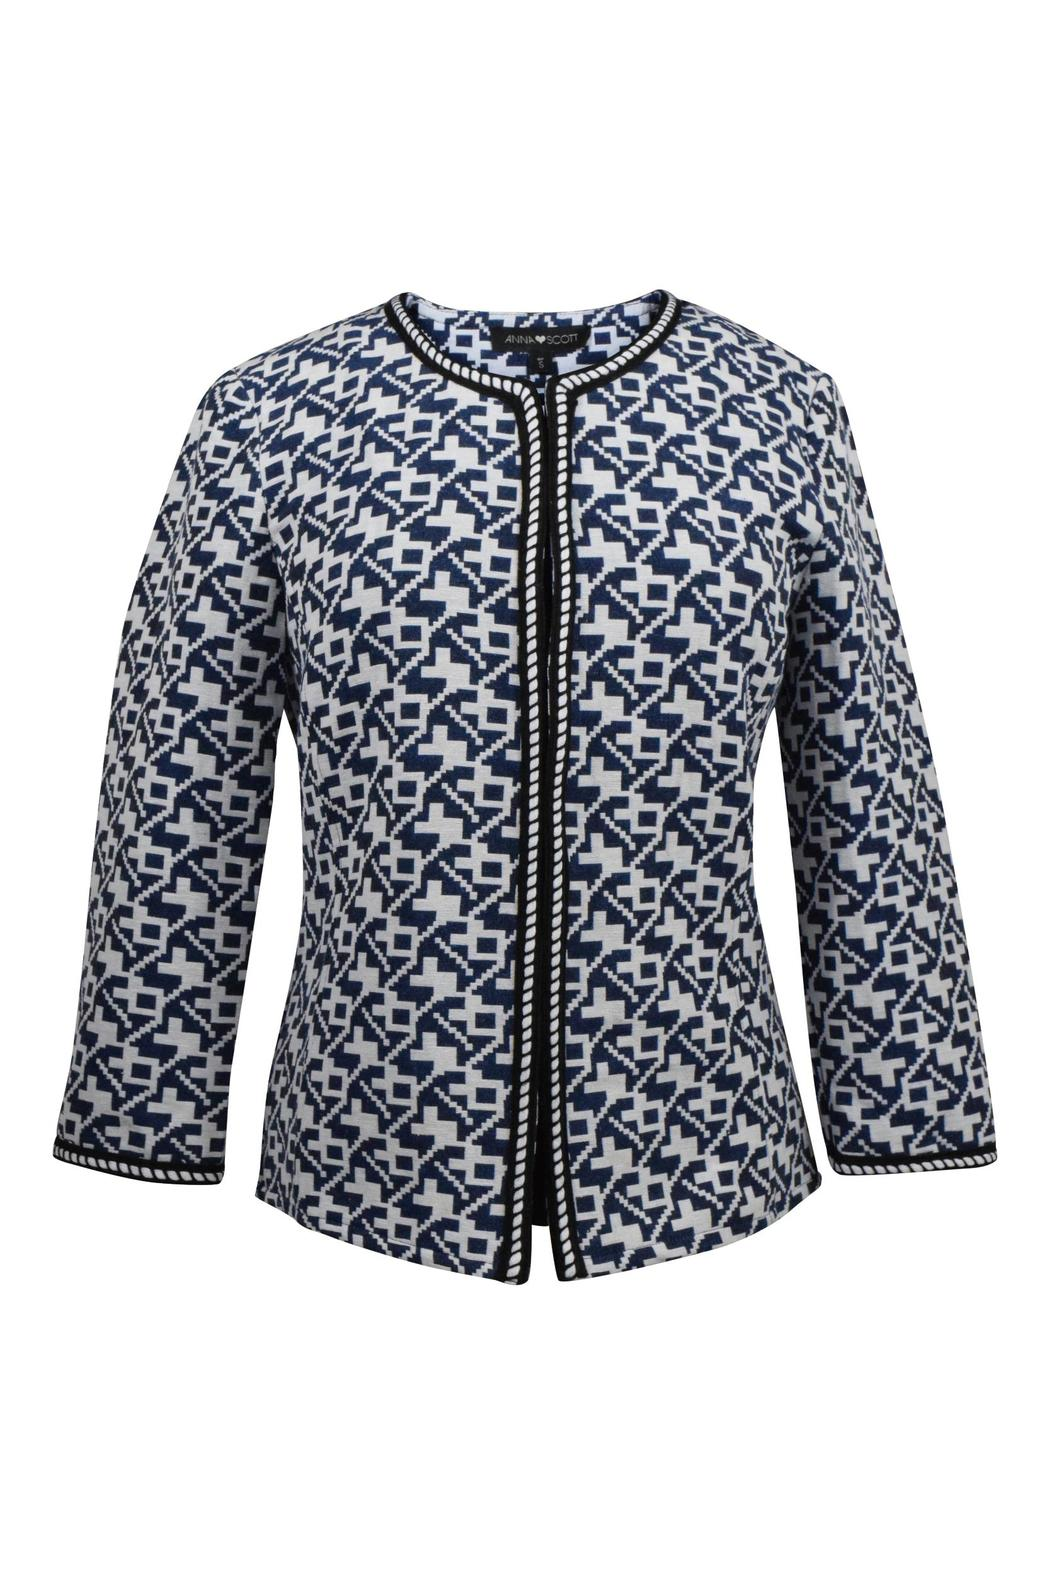 Anna Scott  Aztec Tile Jacket - Main Image